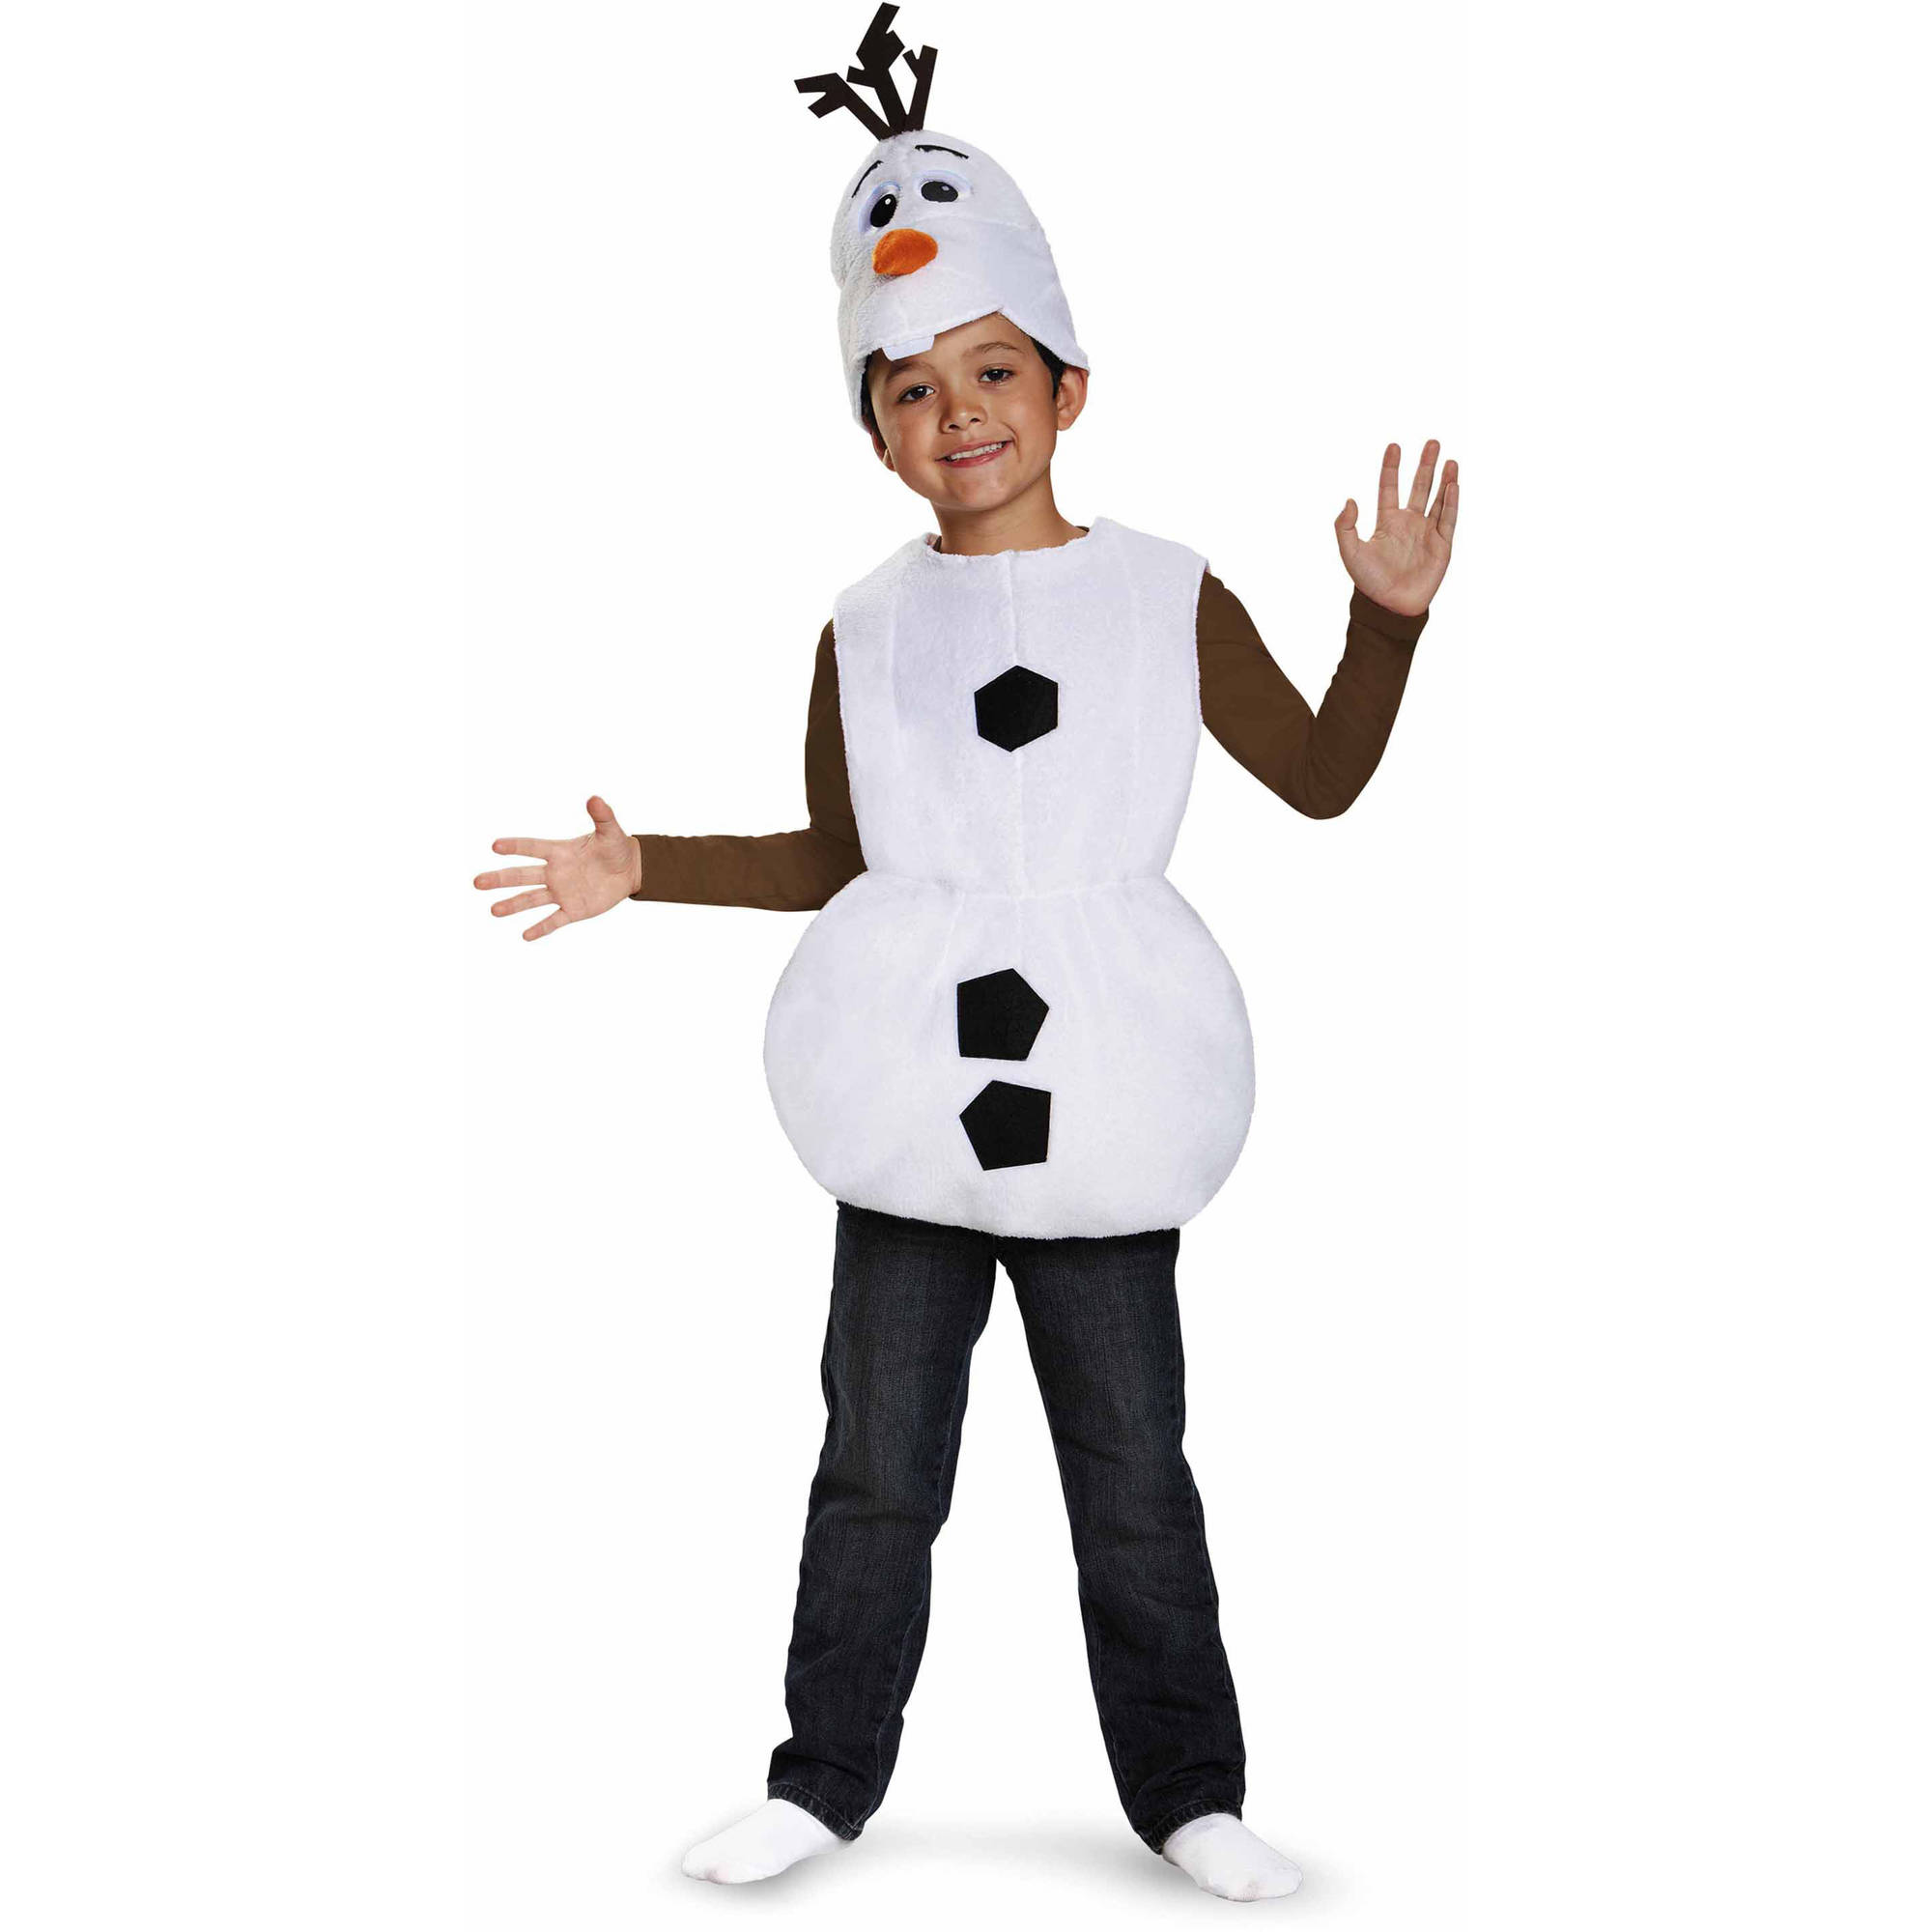 Frozen olaf basic toddler halloween dress up / role play costume 3t/4t